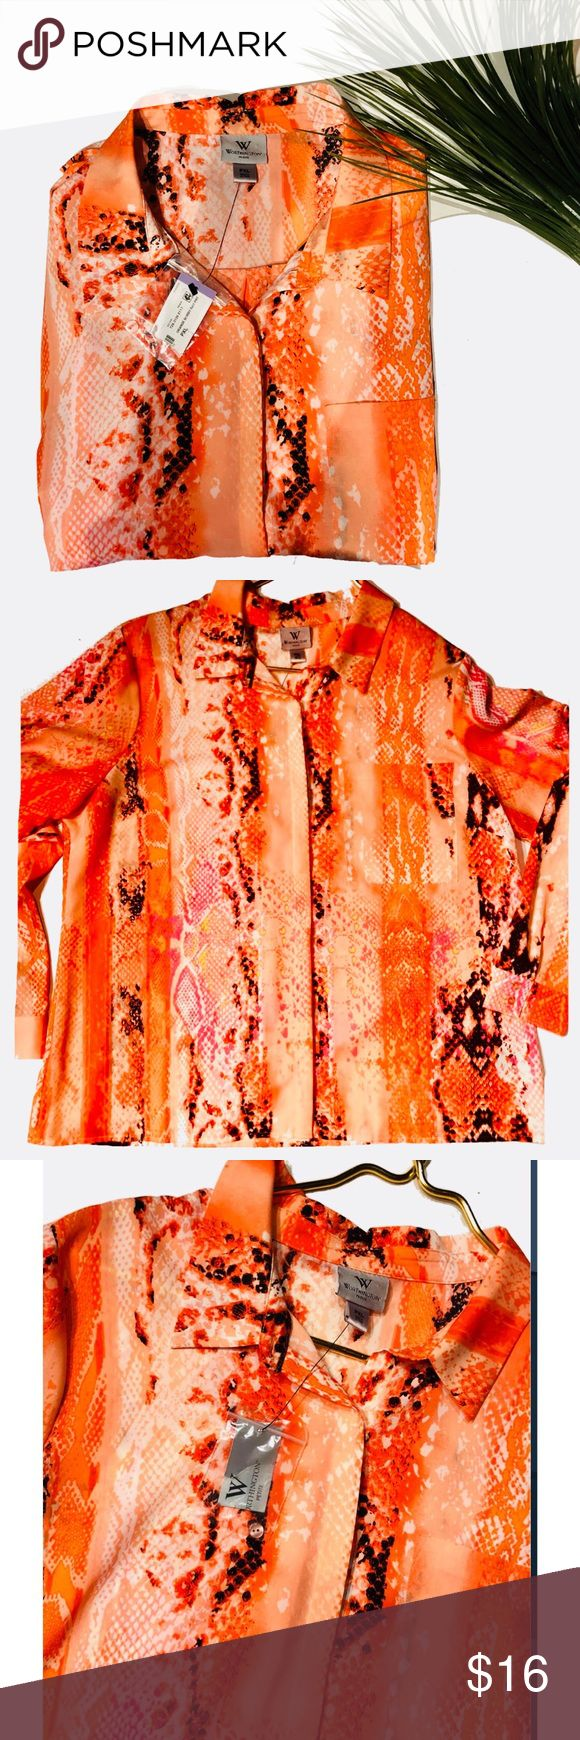 Nwt petite XL orange blouse So pretty  Vibrant colors , color is called Orange Bobby Ray  100% polyester Petite XL Worthington Tops Blouses